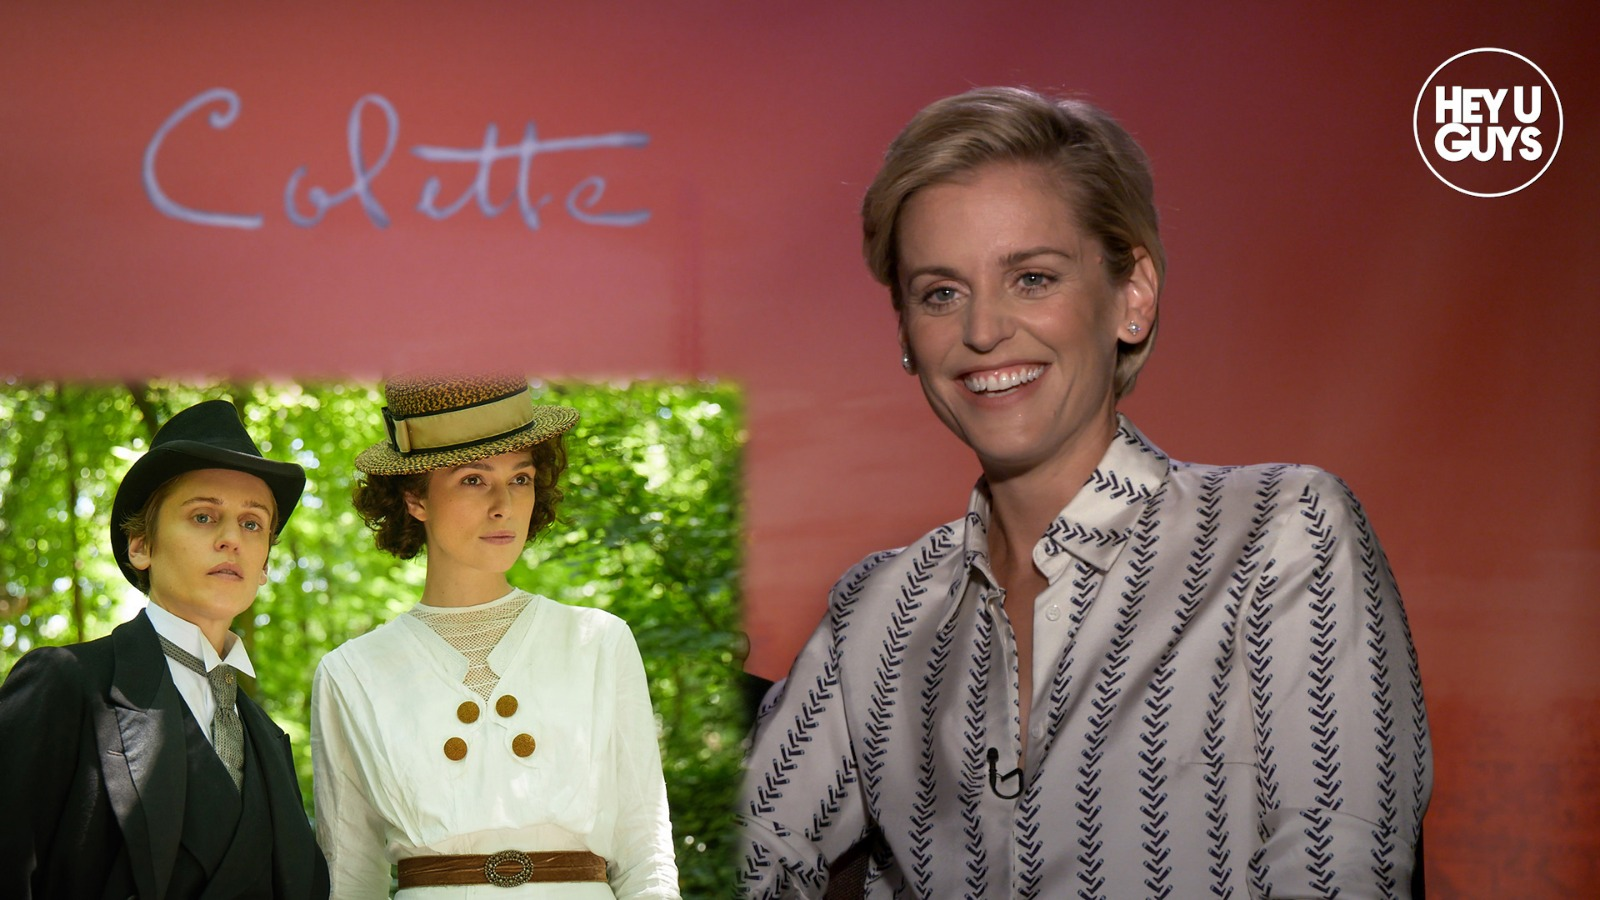 536d98db1c Exclusive  Denise Gough on Colette - with Keira Knightley